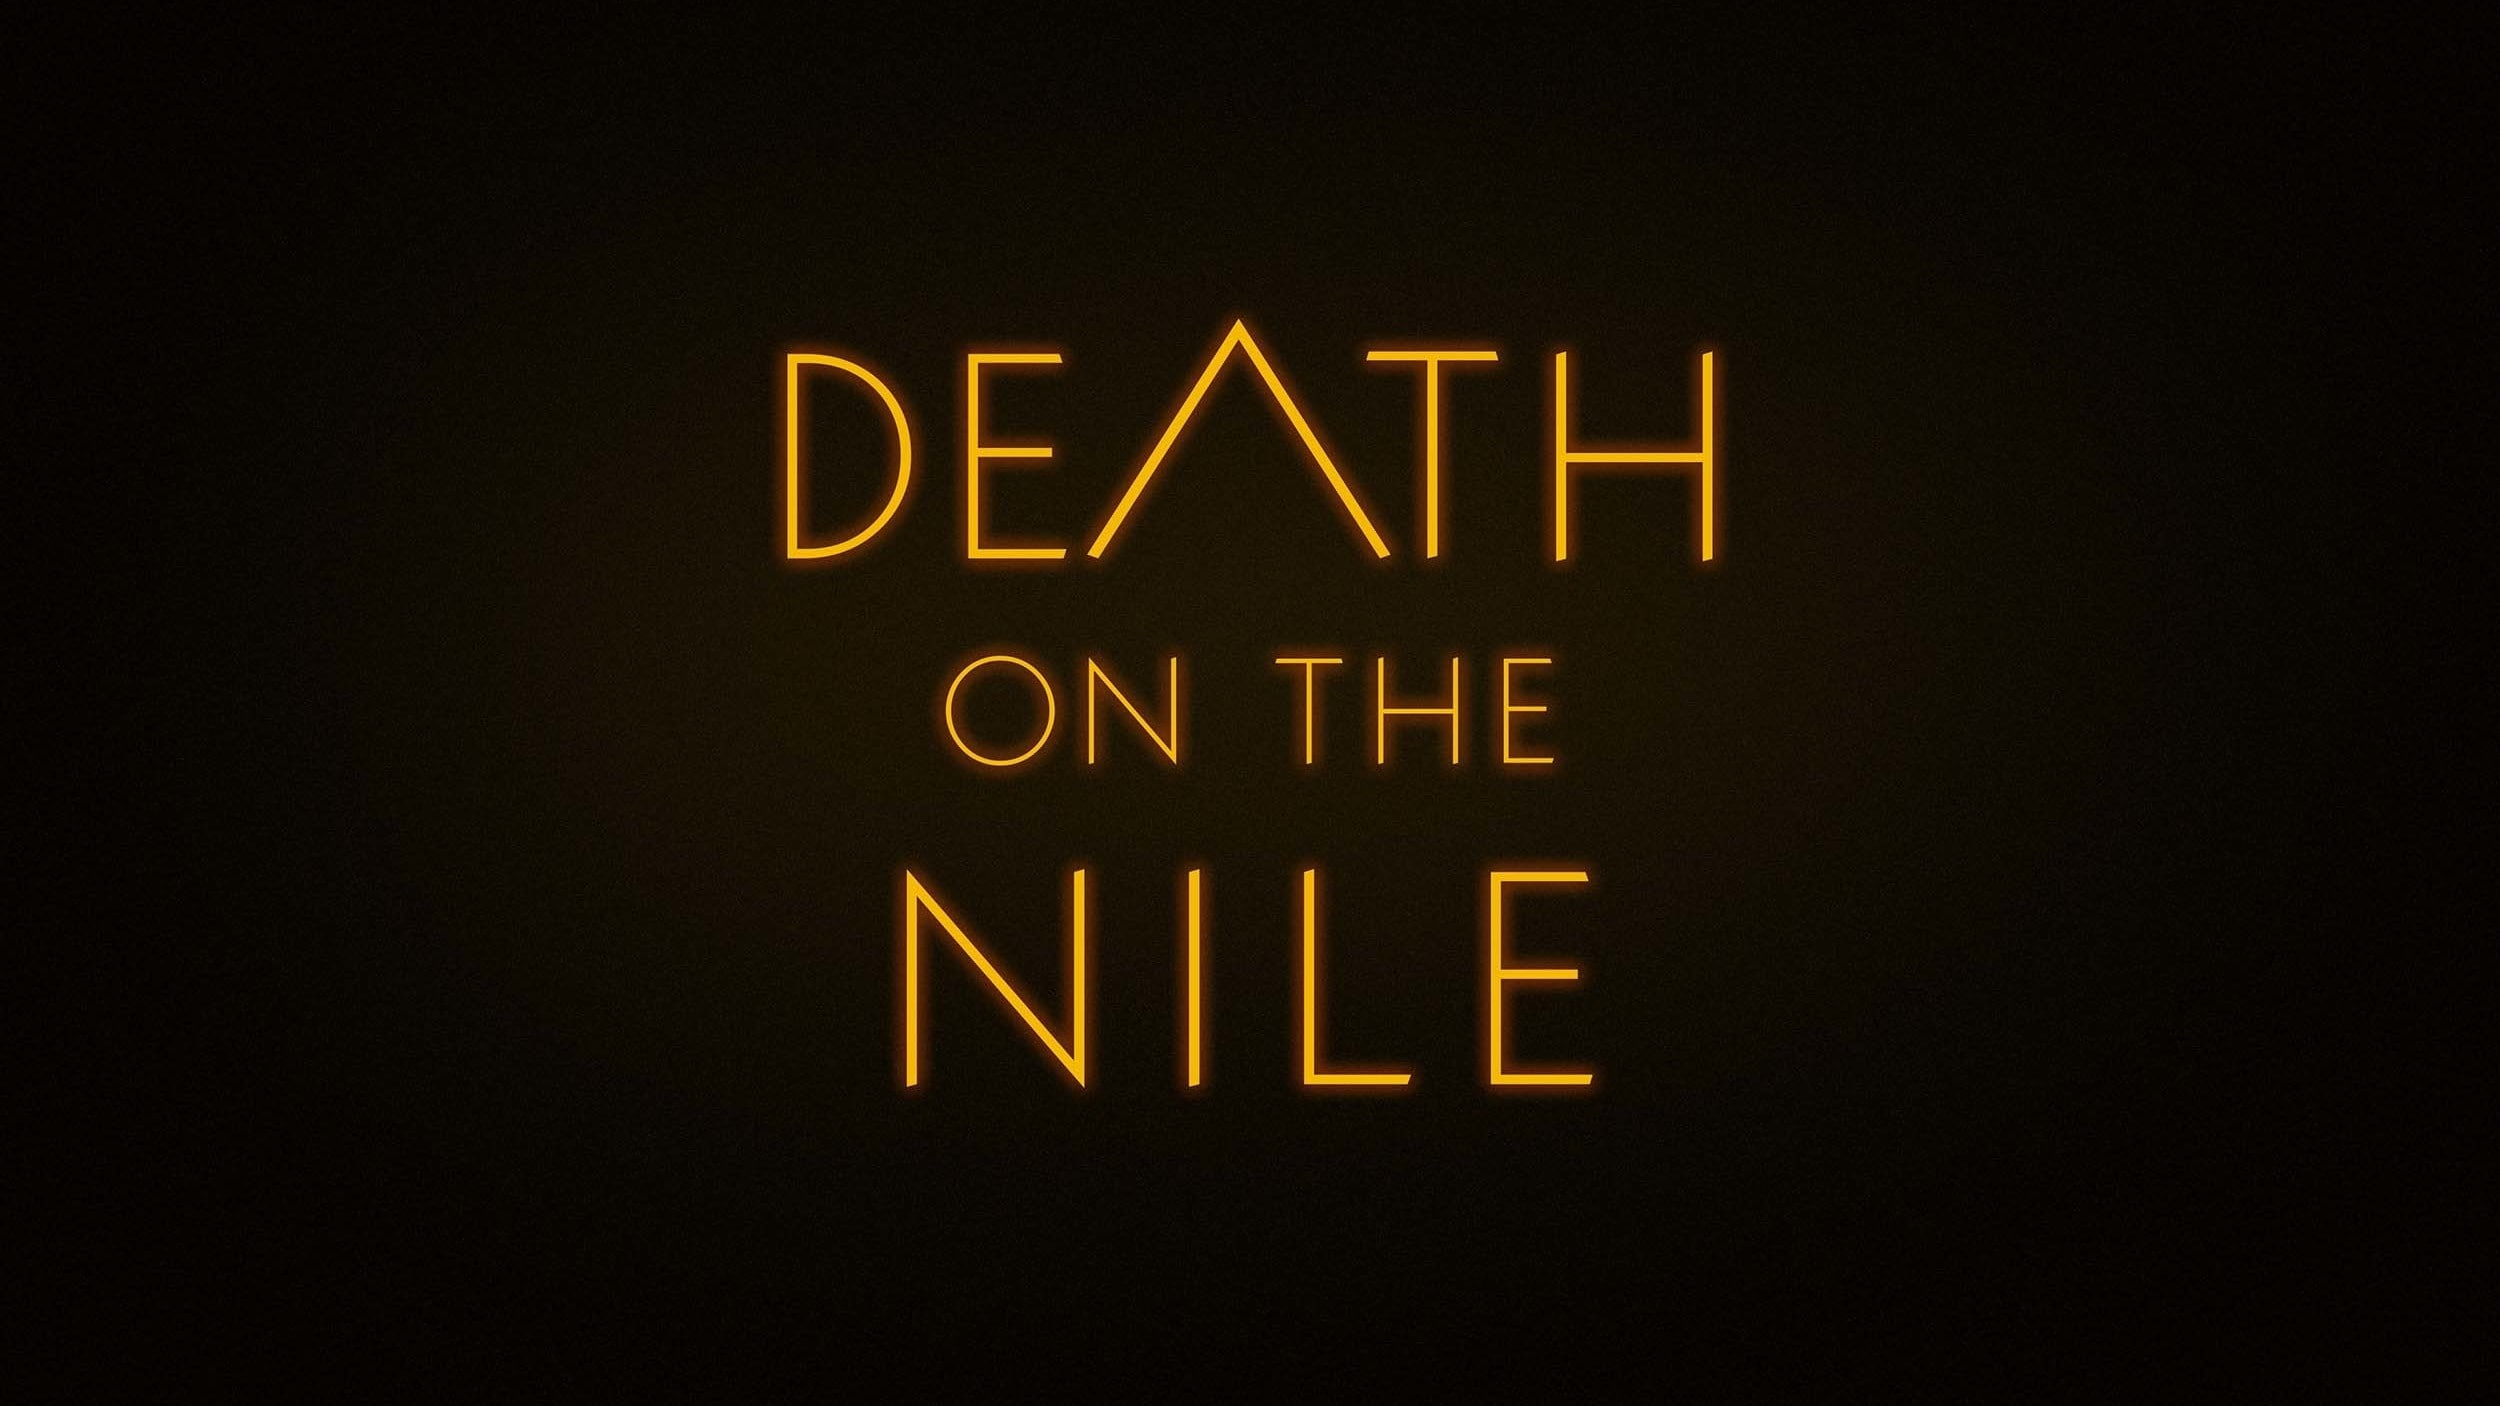 A still from Death of the Nile